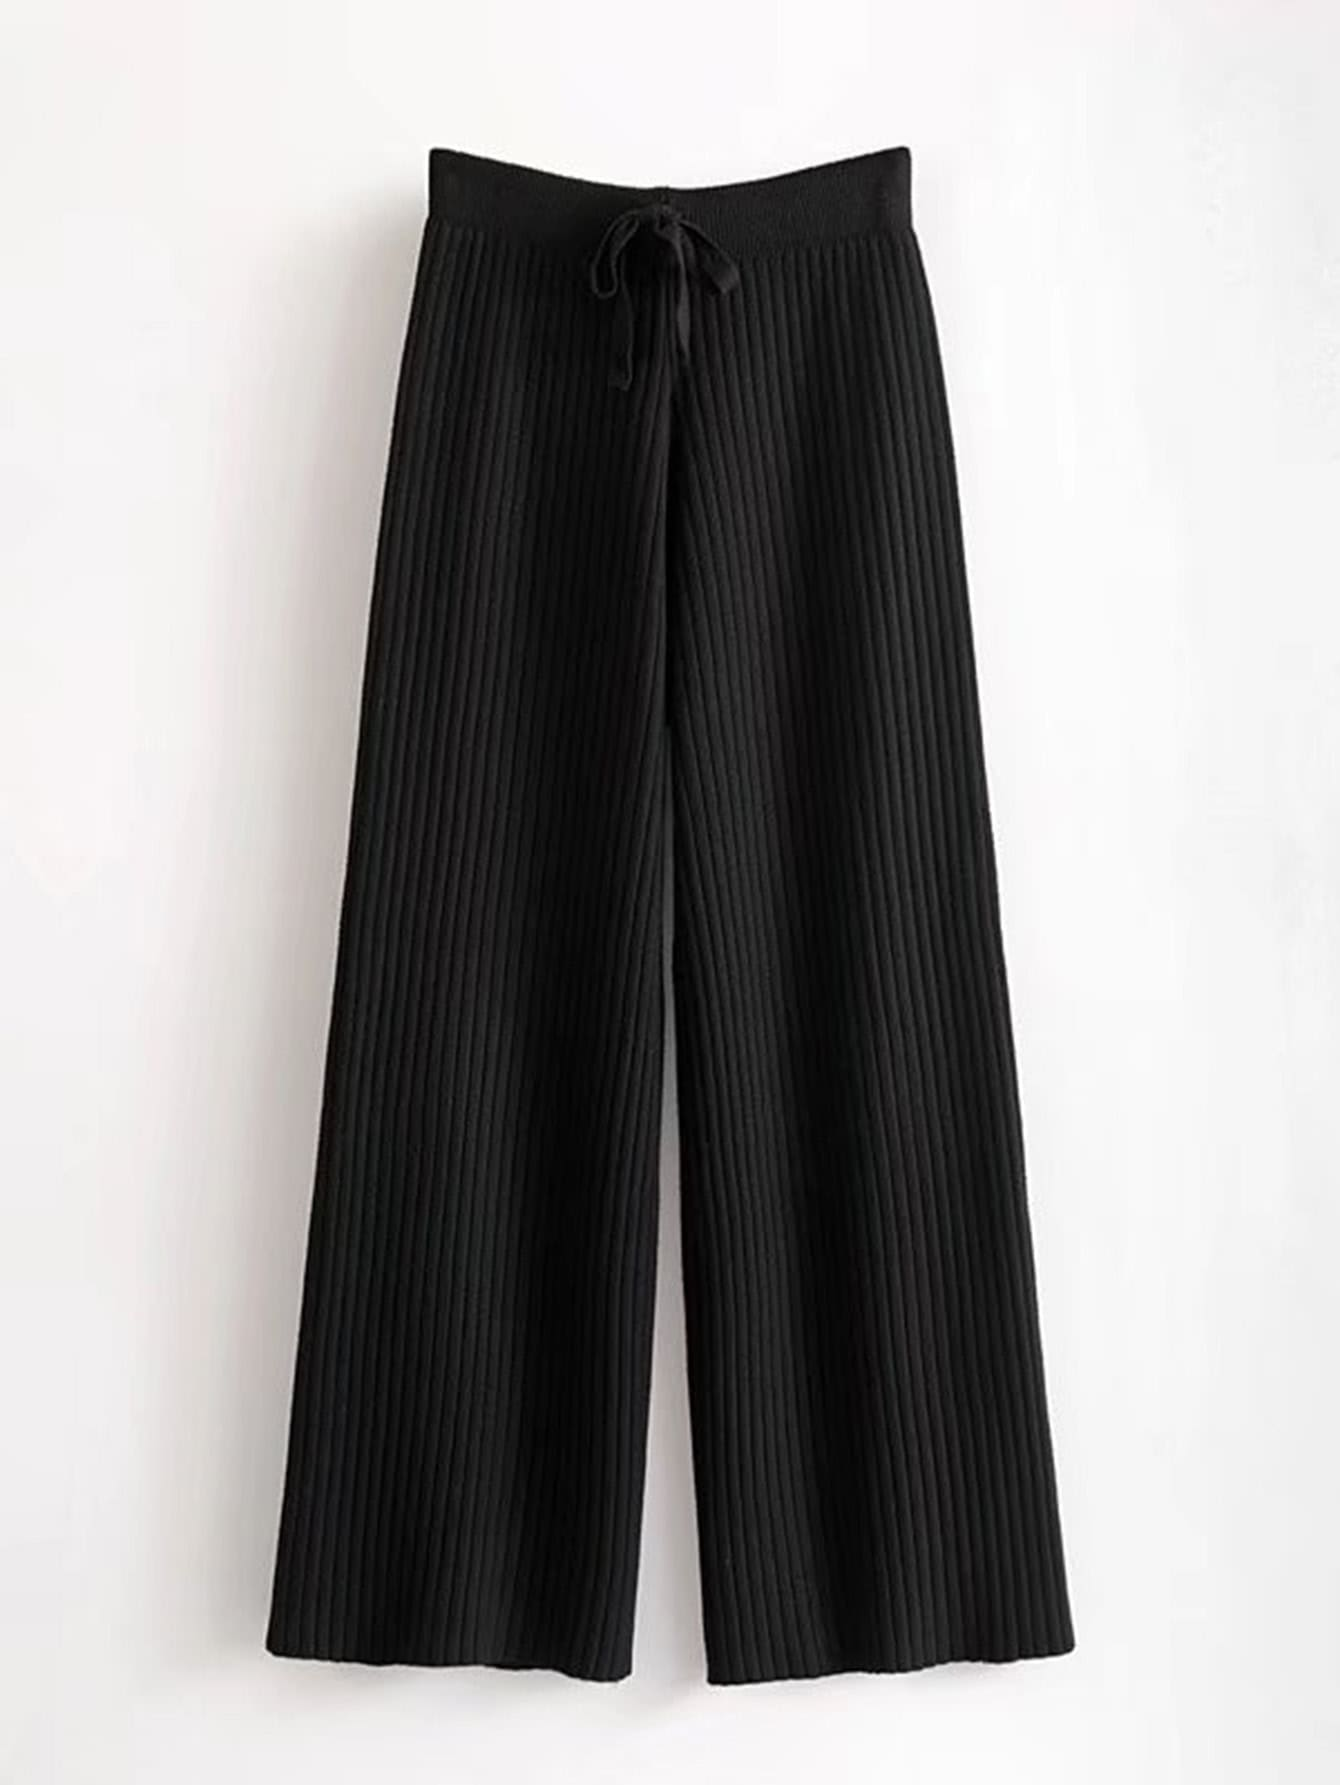 Drawstring Waist Rib Knit Pants